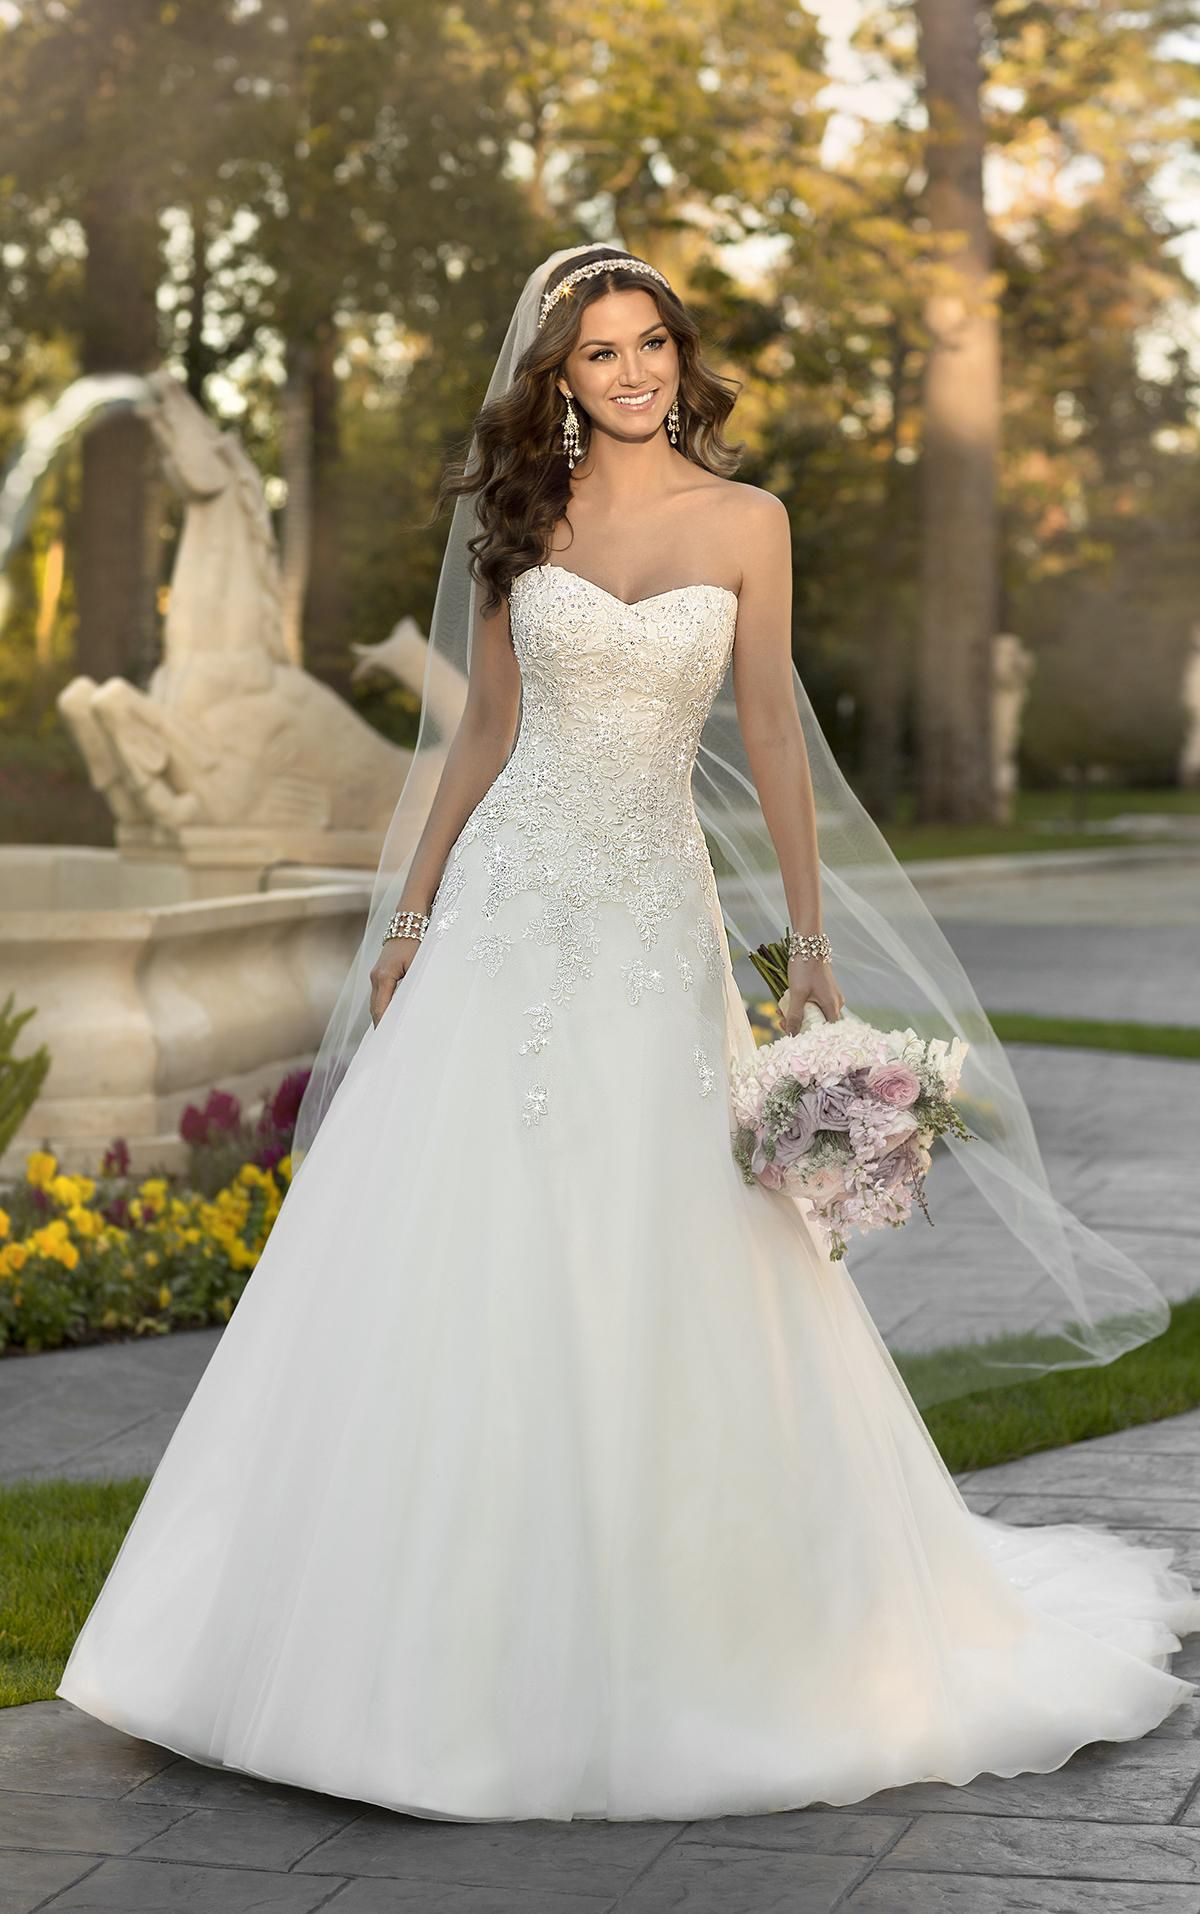 0ef7944f9b36 Wedding Dress Cheap 2016 A Line Wedding Dresses With Free Veil Stella York  Strapless Appliques Sequins Organza Bridal Gowns With Lace Up Back And Long  Train ...